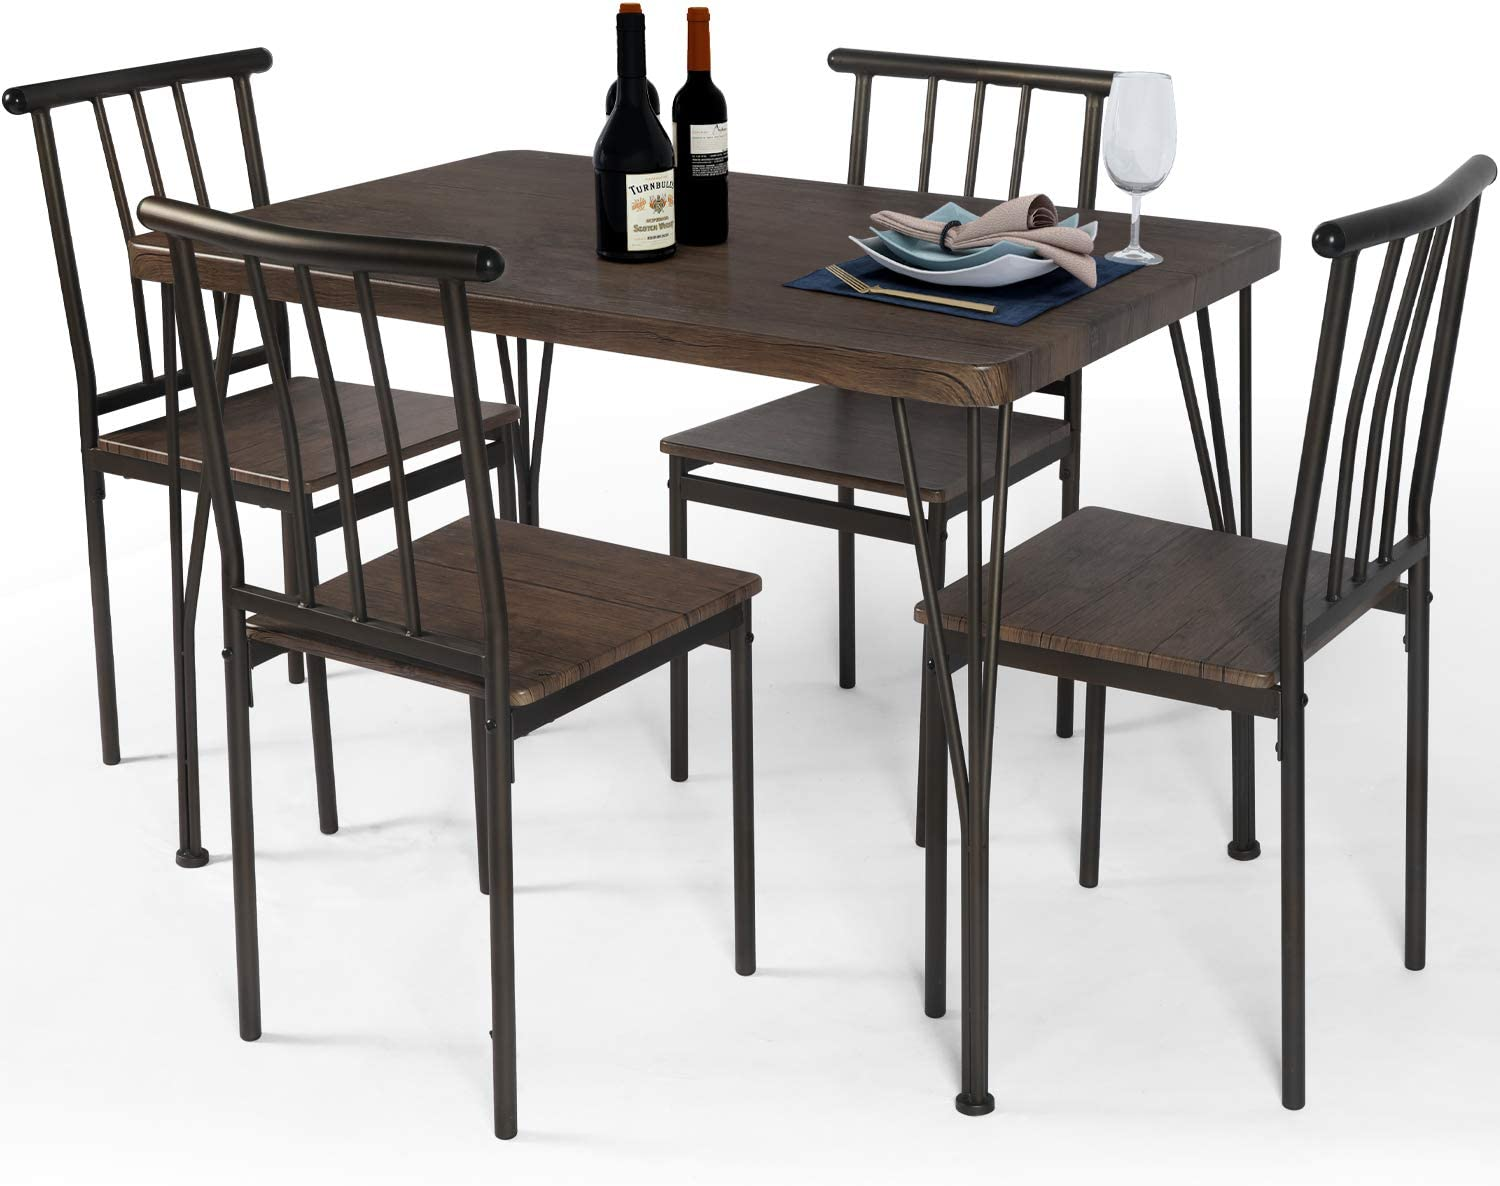 LAZZO 5 Piece Dining Table Selling rankings Set with Wooden Kitchen Max 58% OFF Me